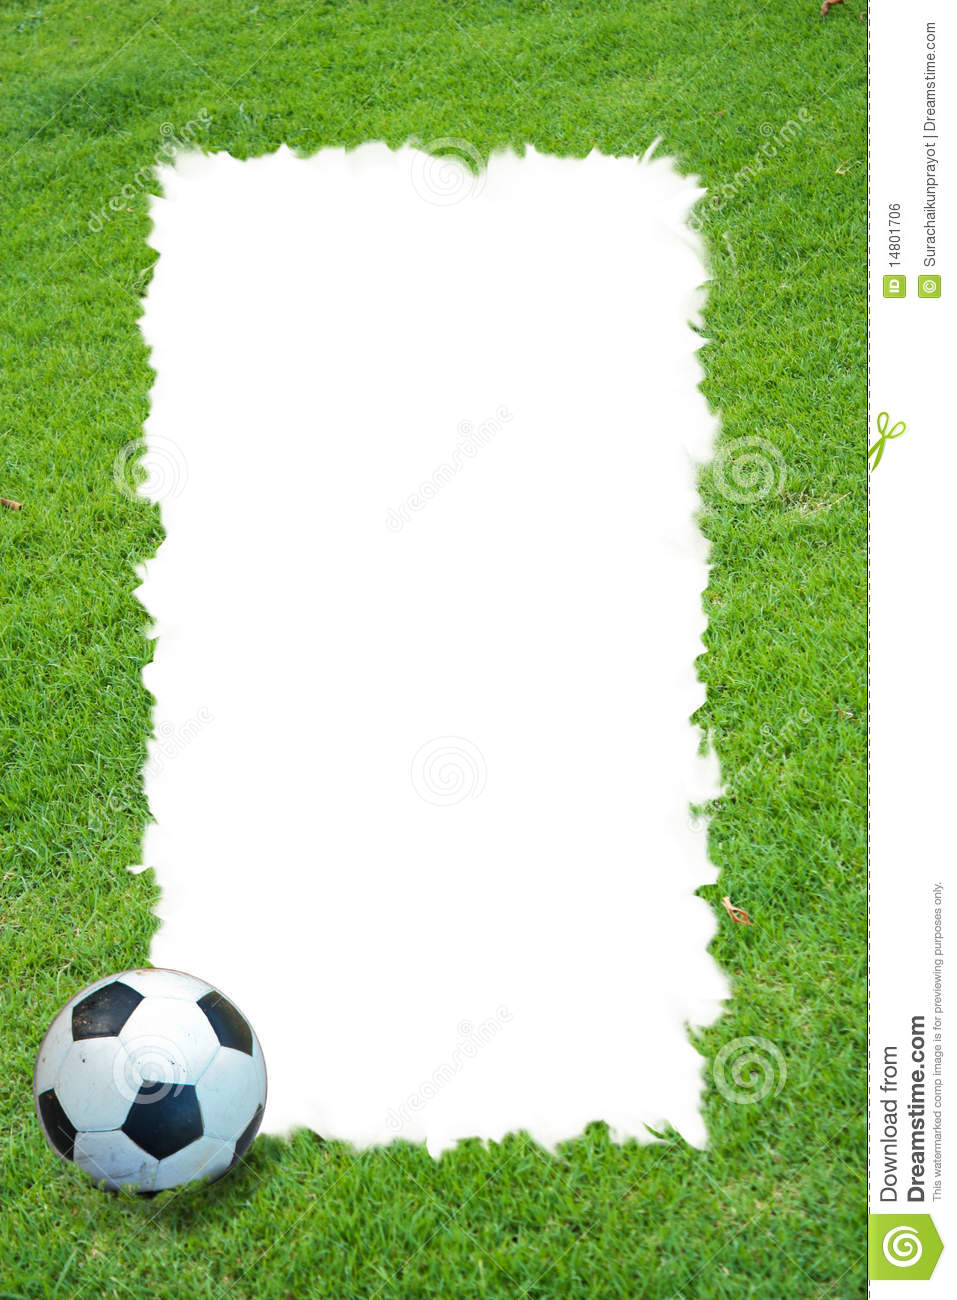 Grass Field And Football Frame Stock Photo Image Of